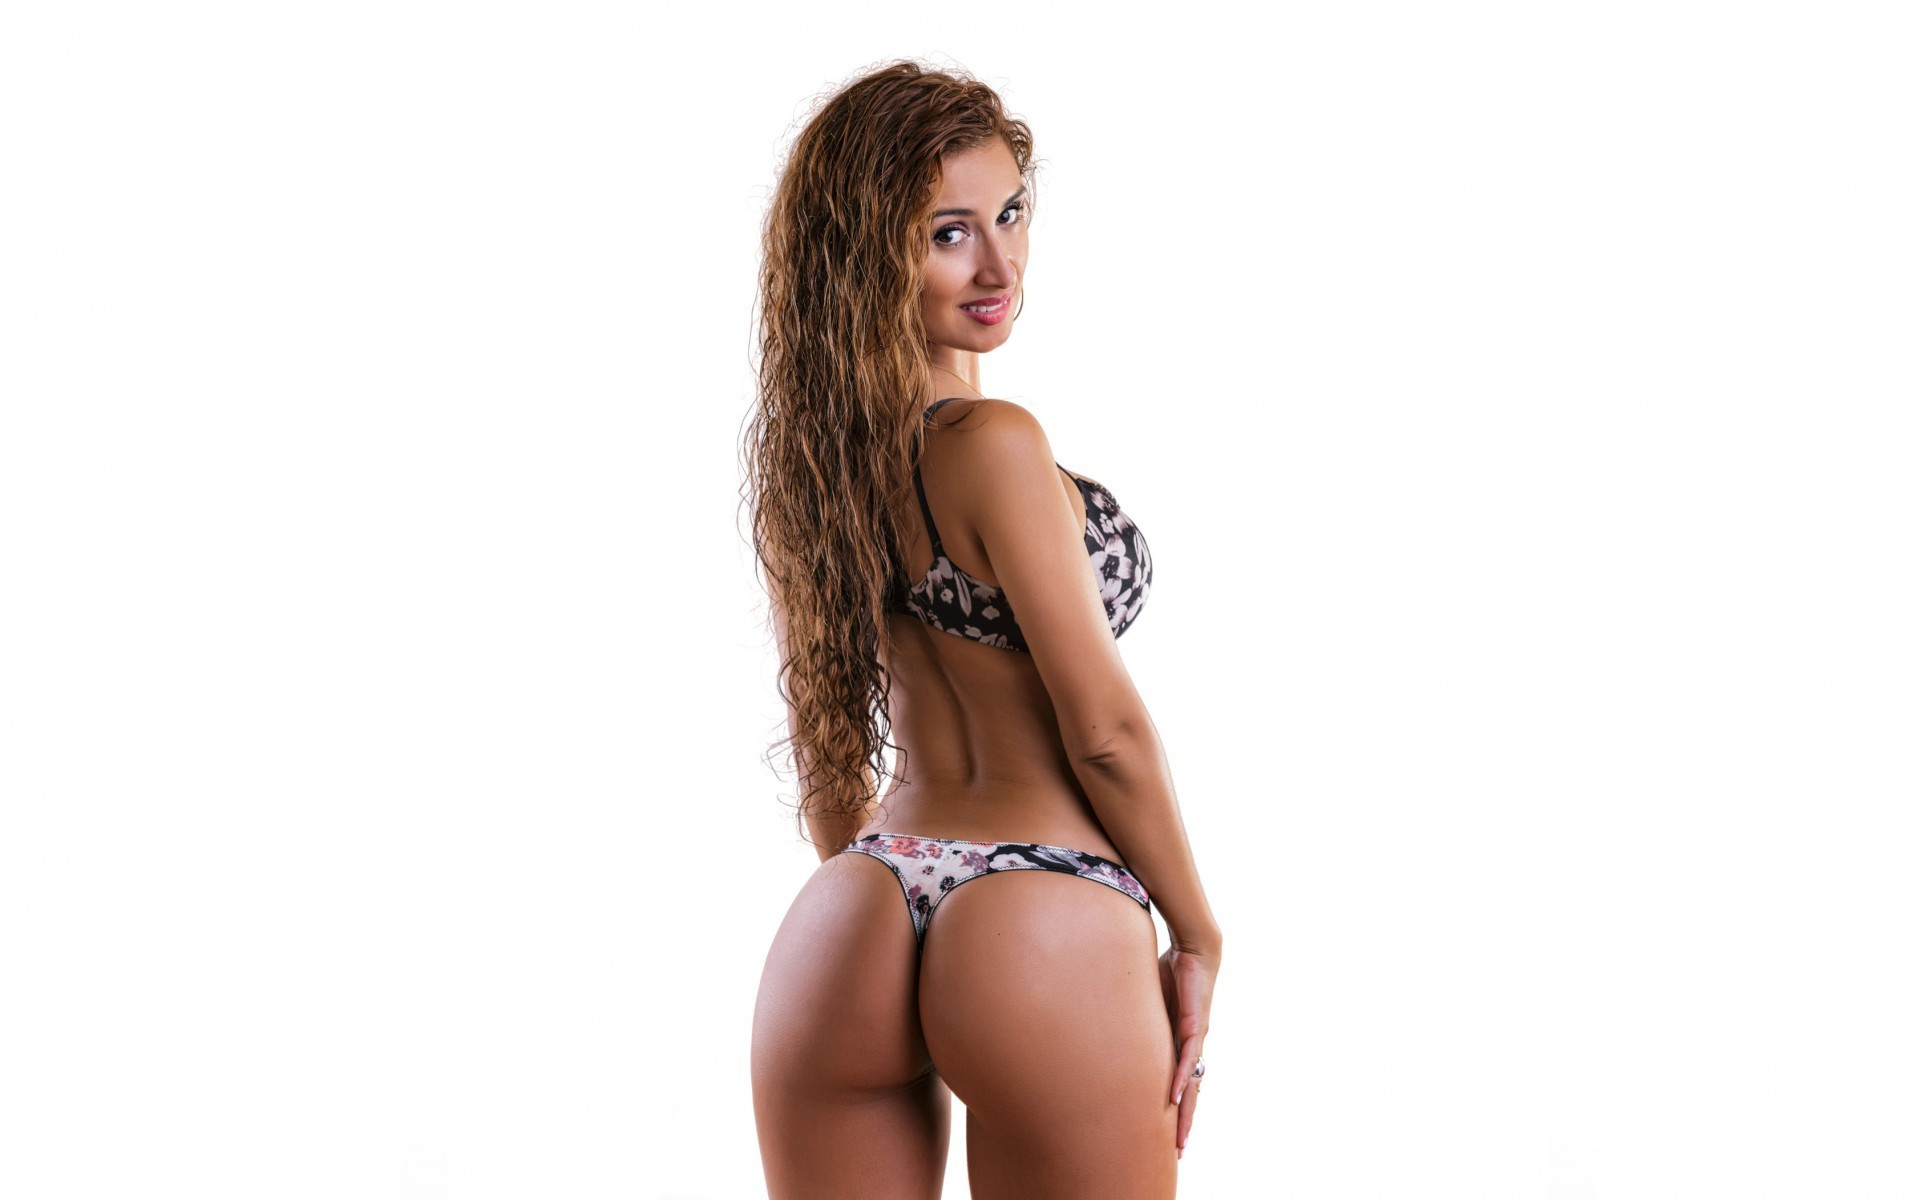 latine sexy ass bikini model 1920×1200